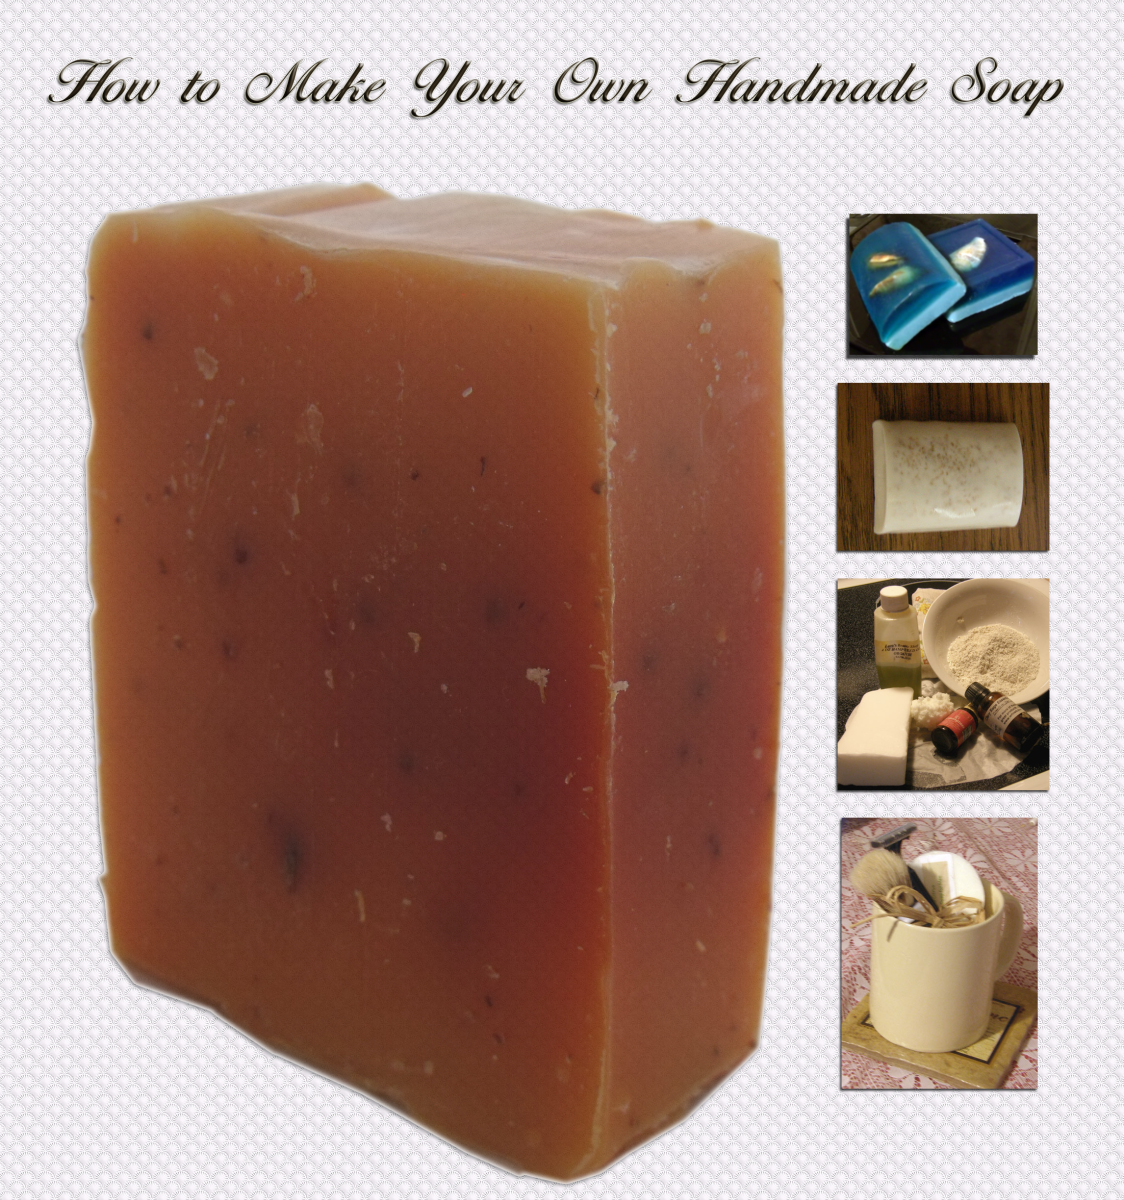 Learn the different techniques for handcrafting soaps